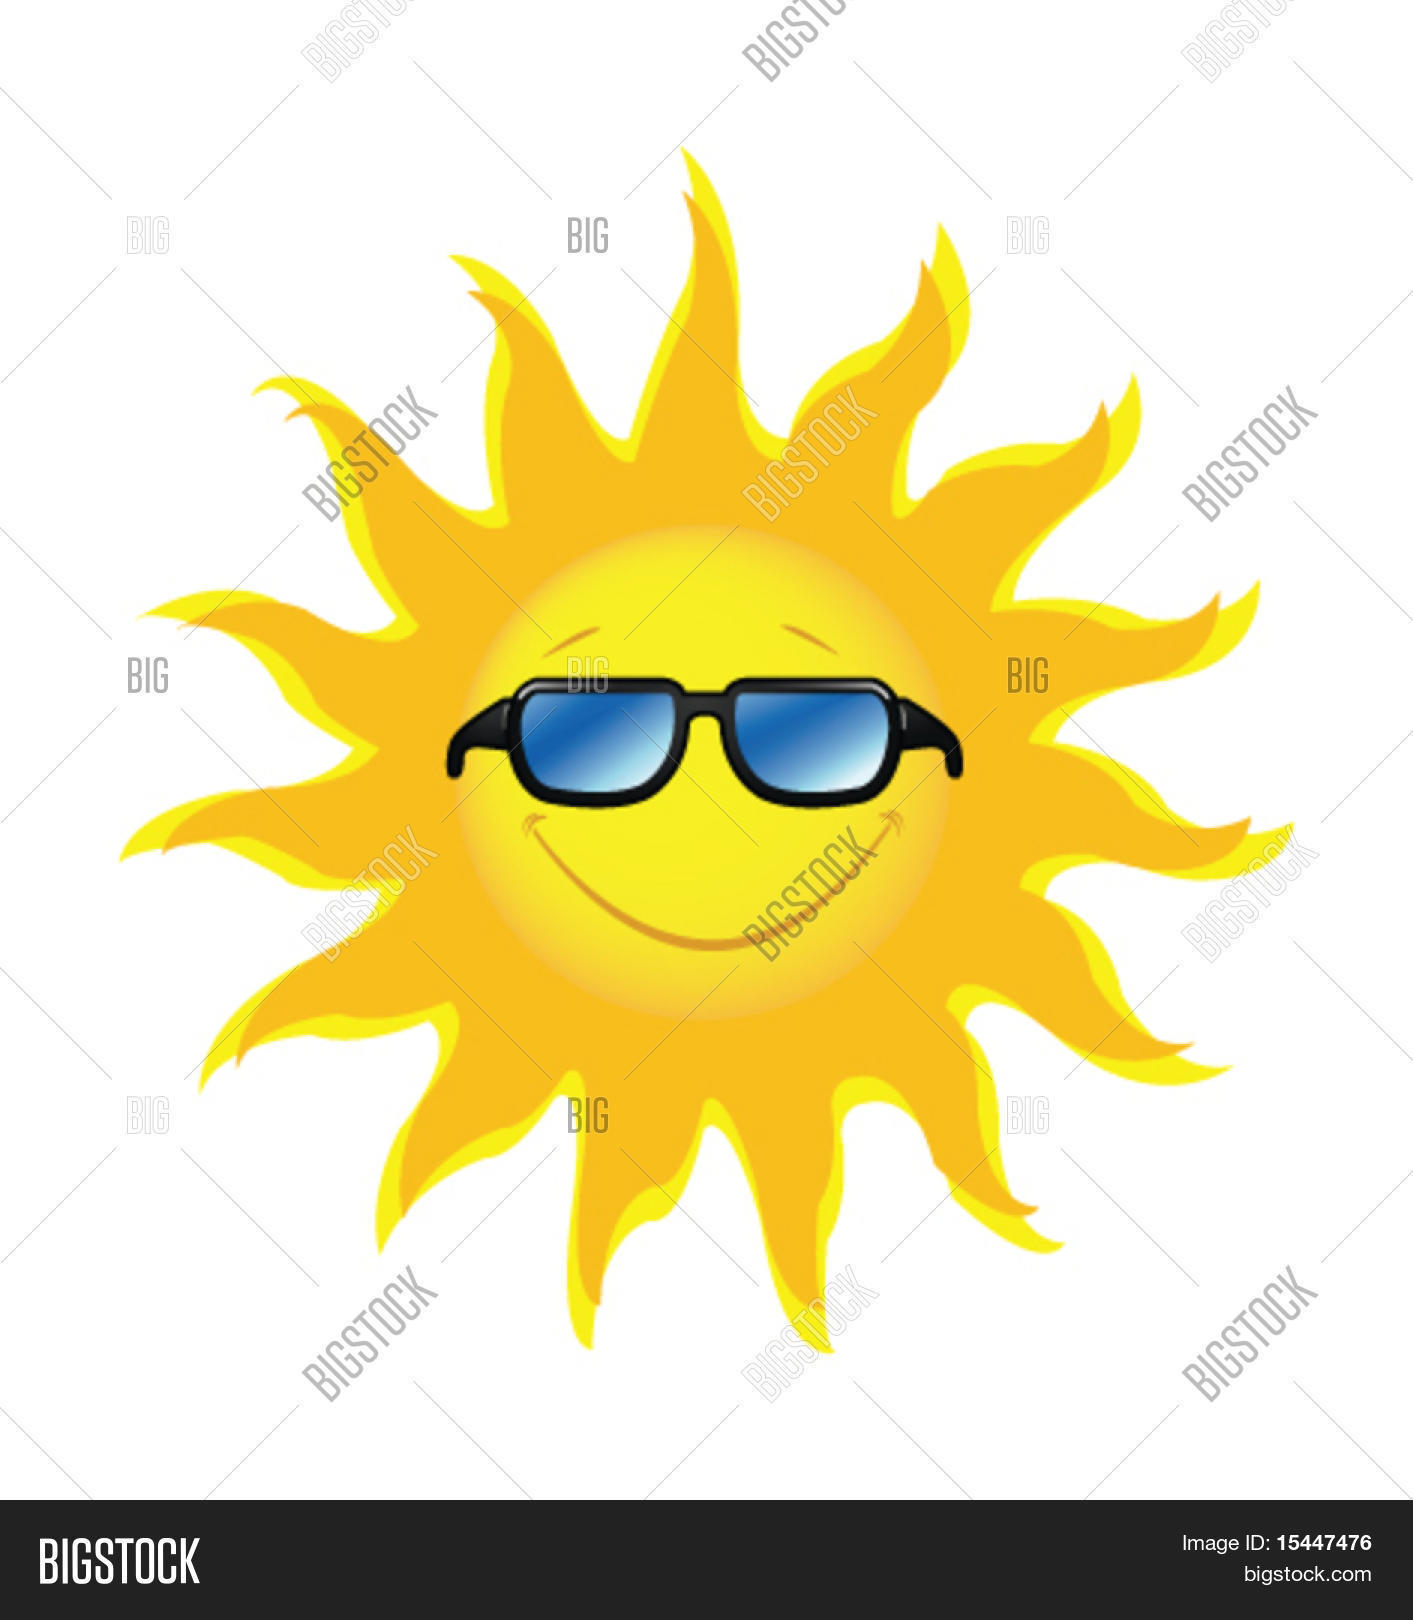 Smiling sun with sunglasses - Smiling Sun With Sunglasses